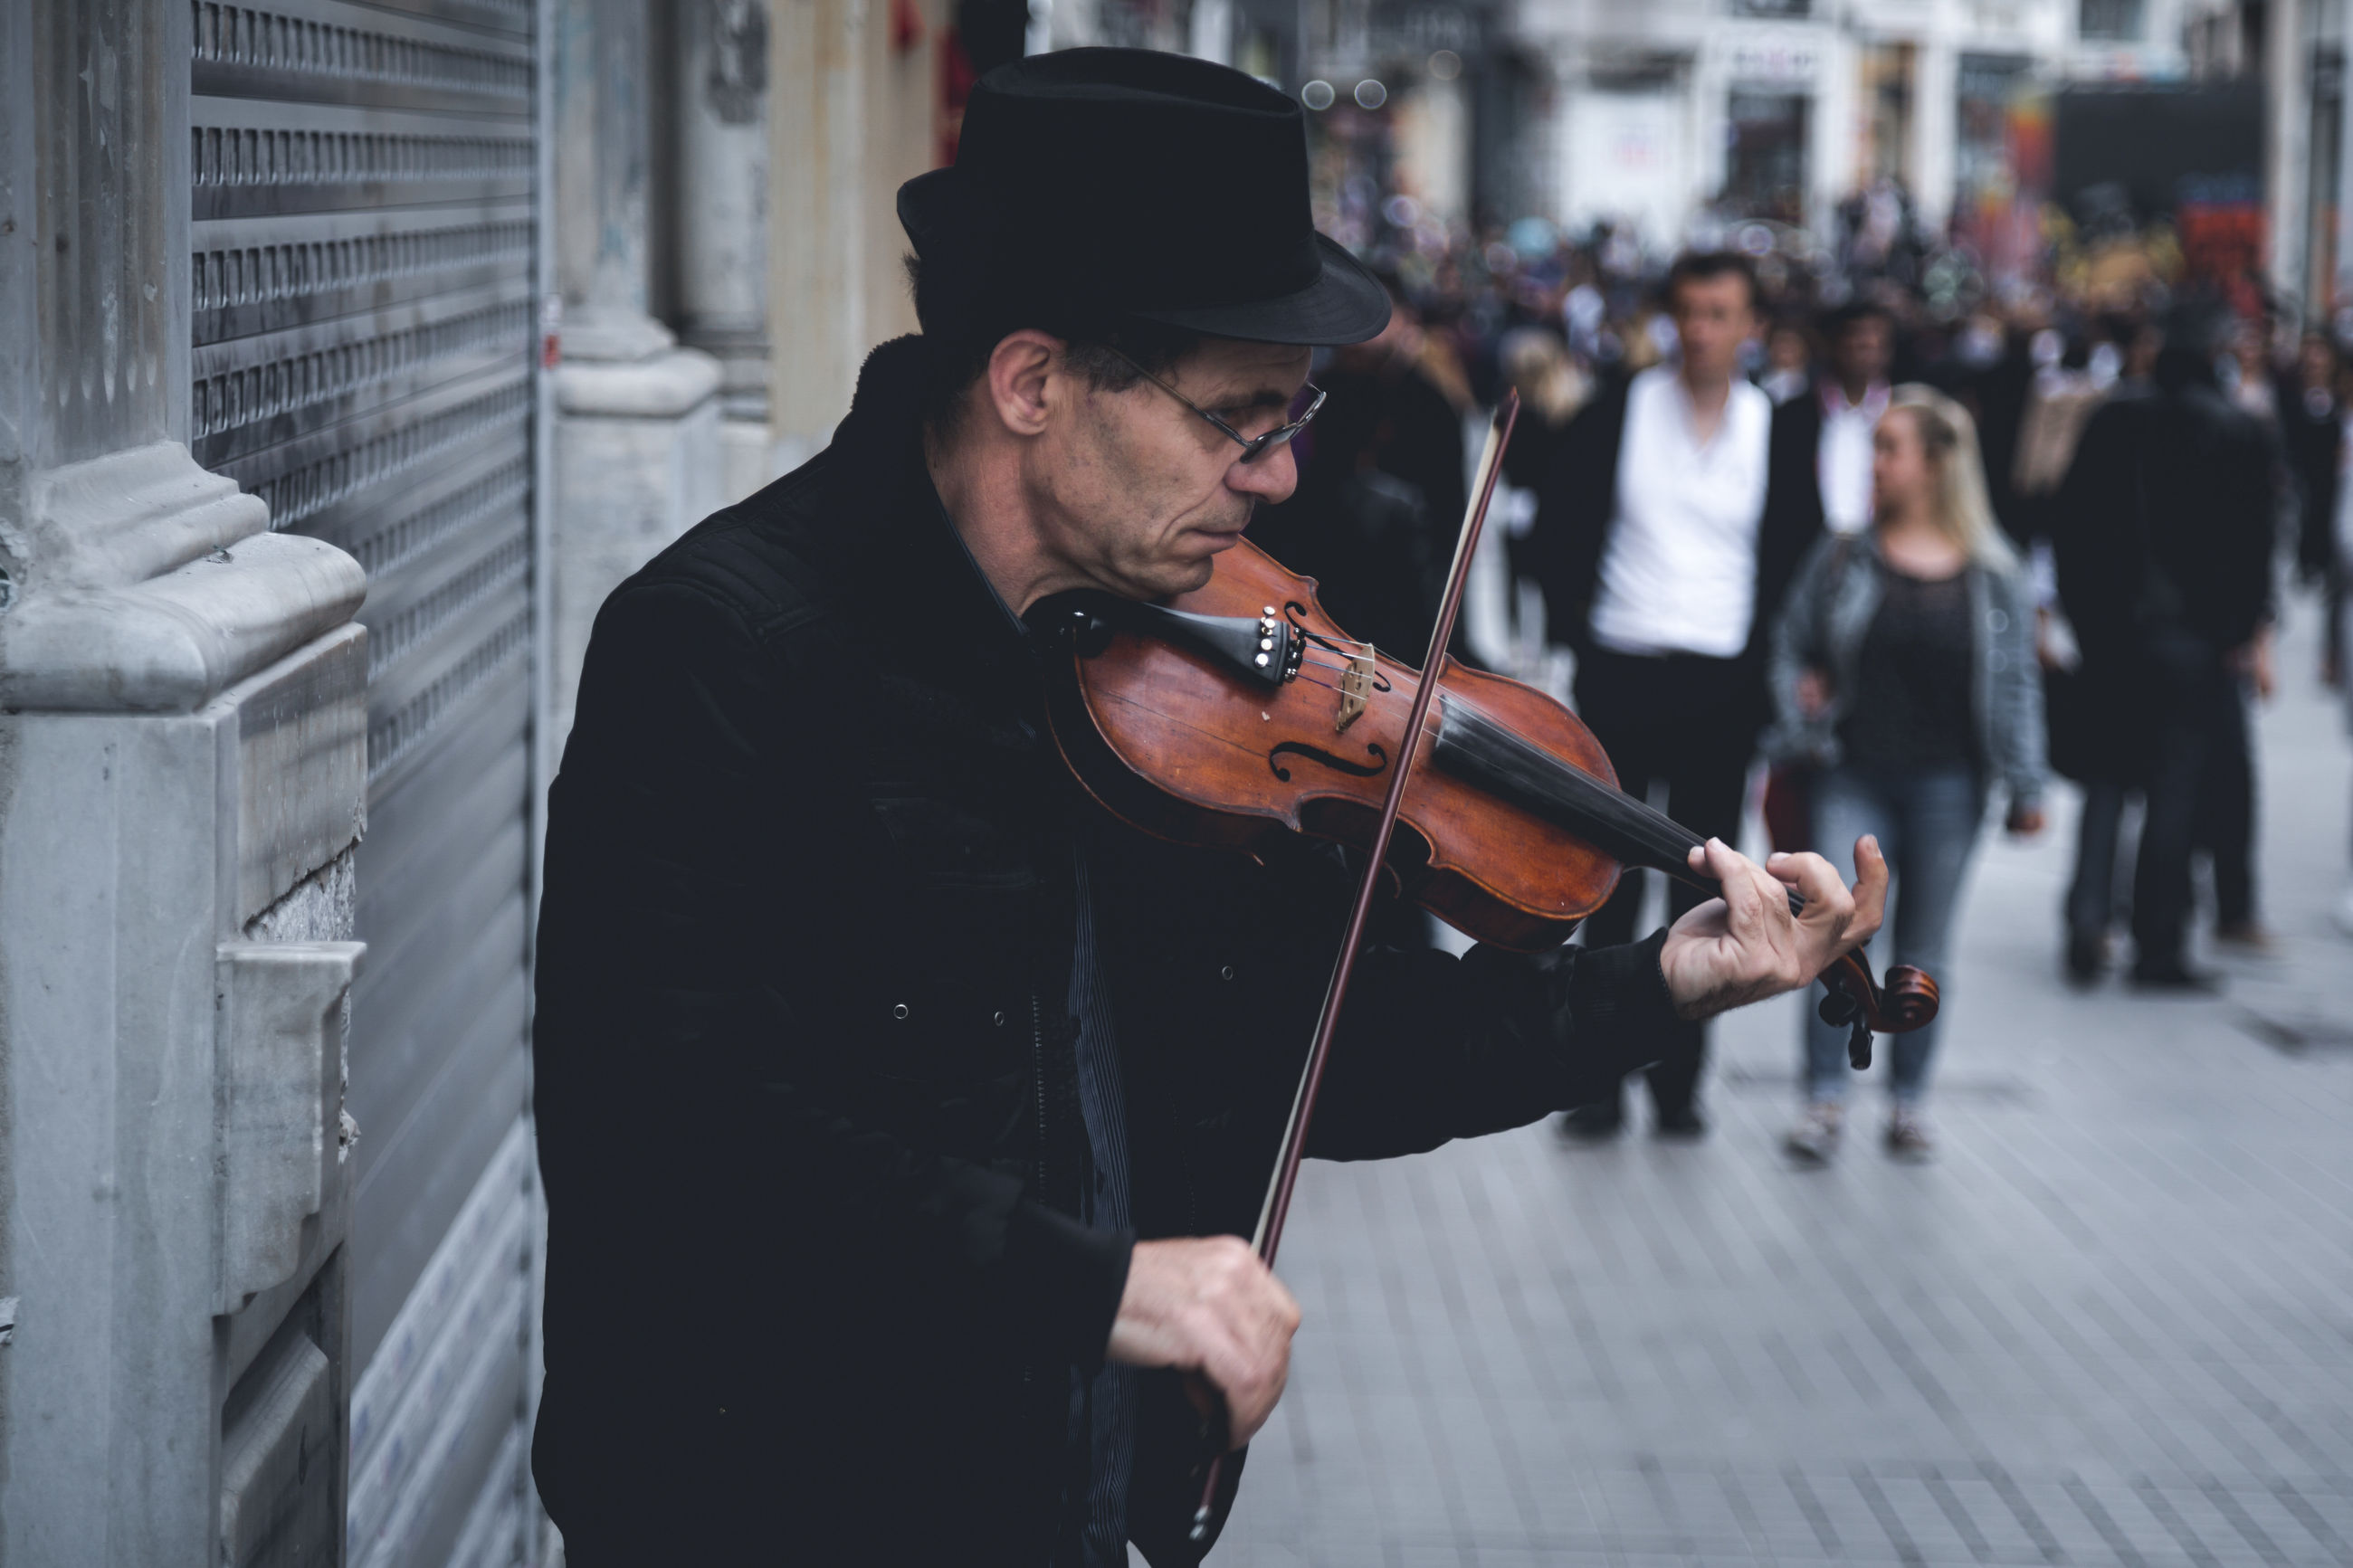 music, musician, performance, real people, arts culture and entertainment, musical instrument, one person, men, outdoors, playing, performing arts event, violin, day, city, young adult, one man only, adult, people